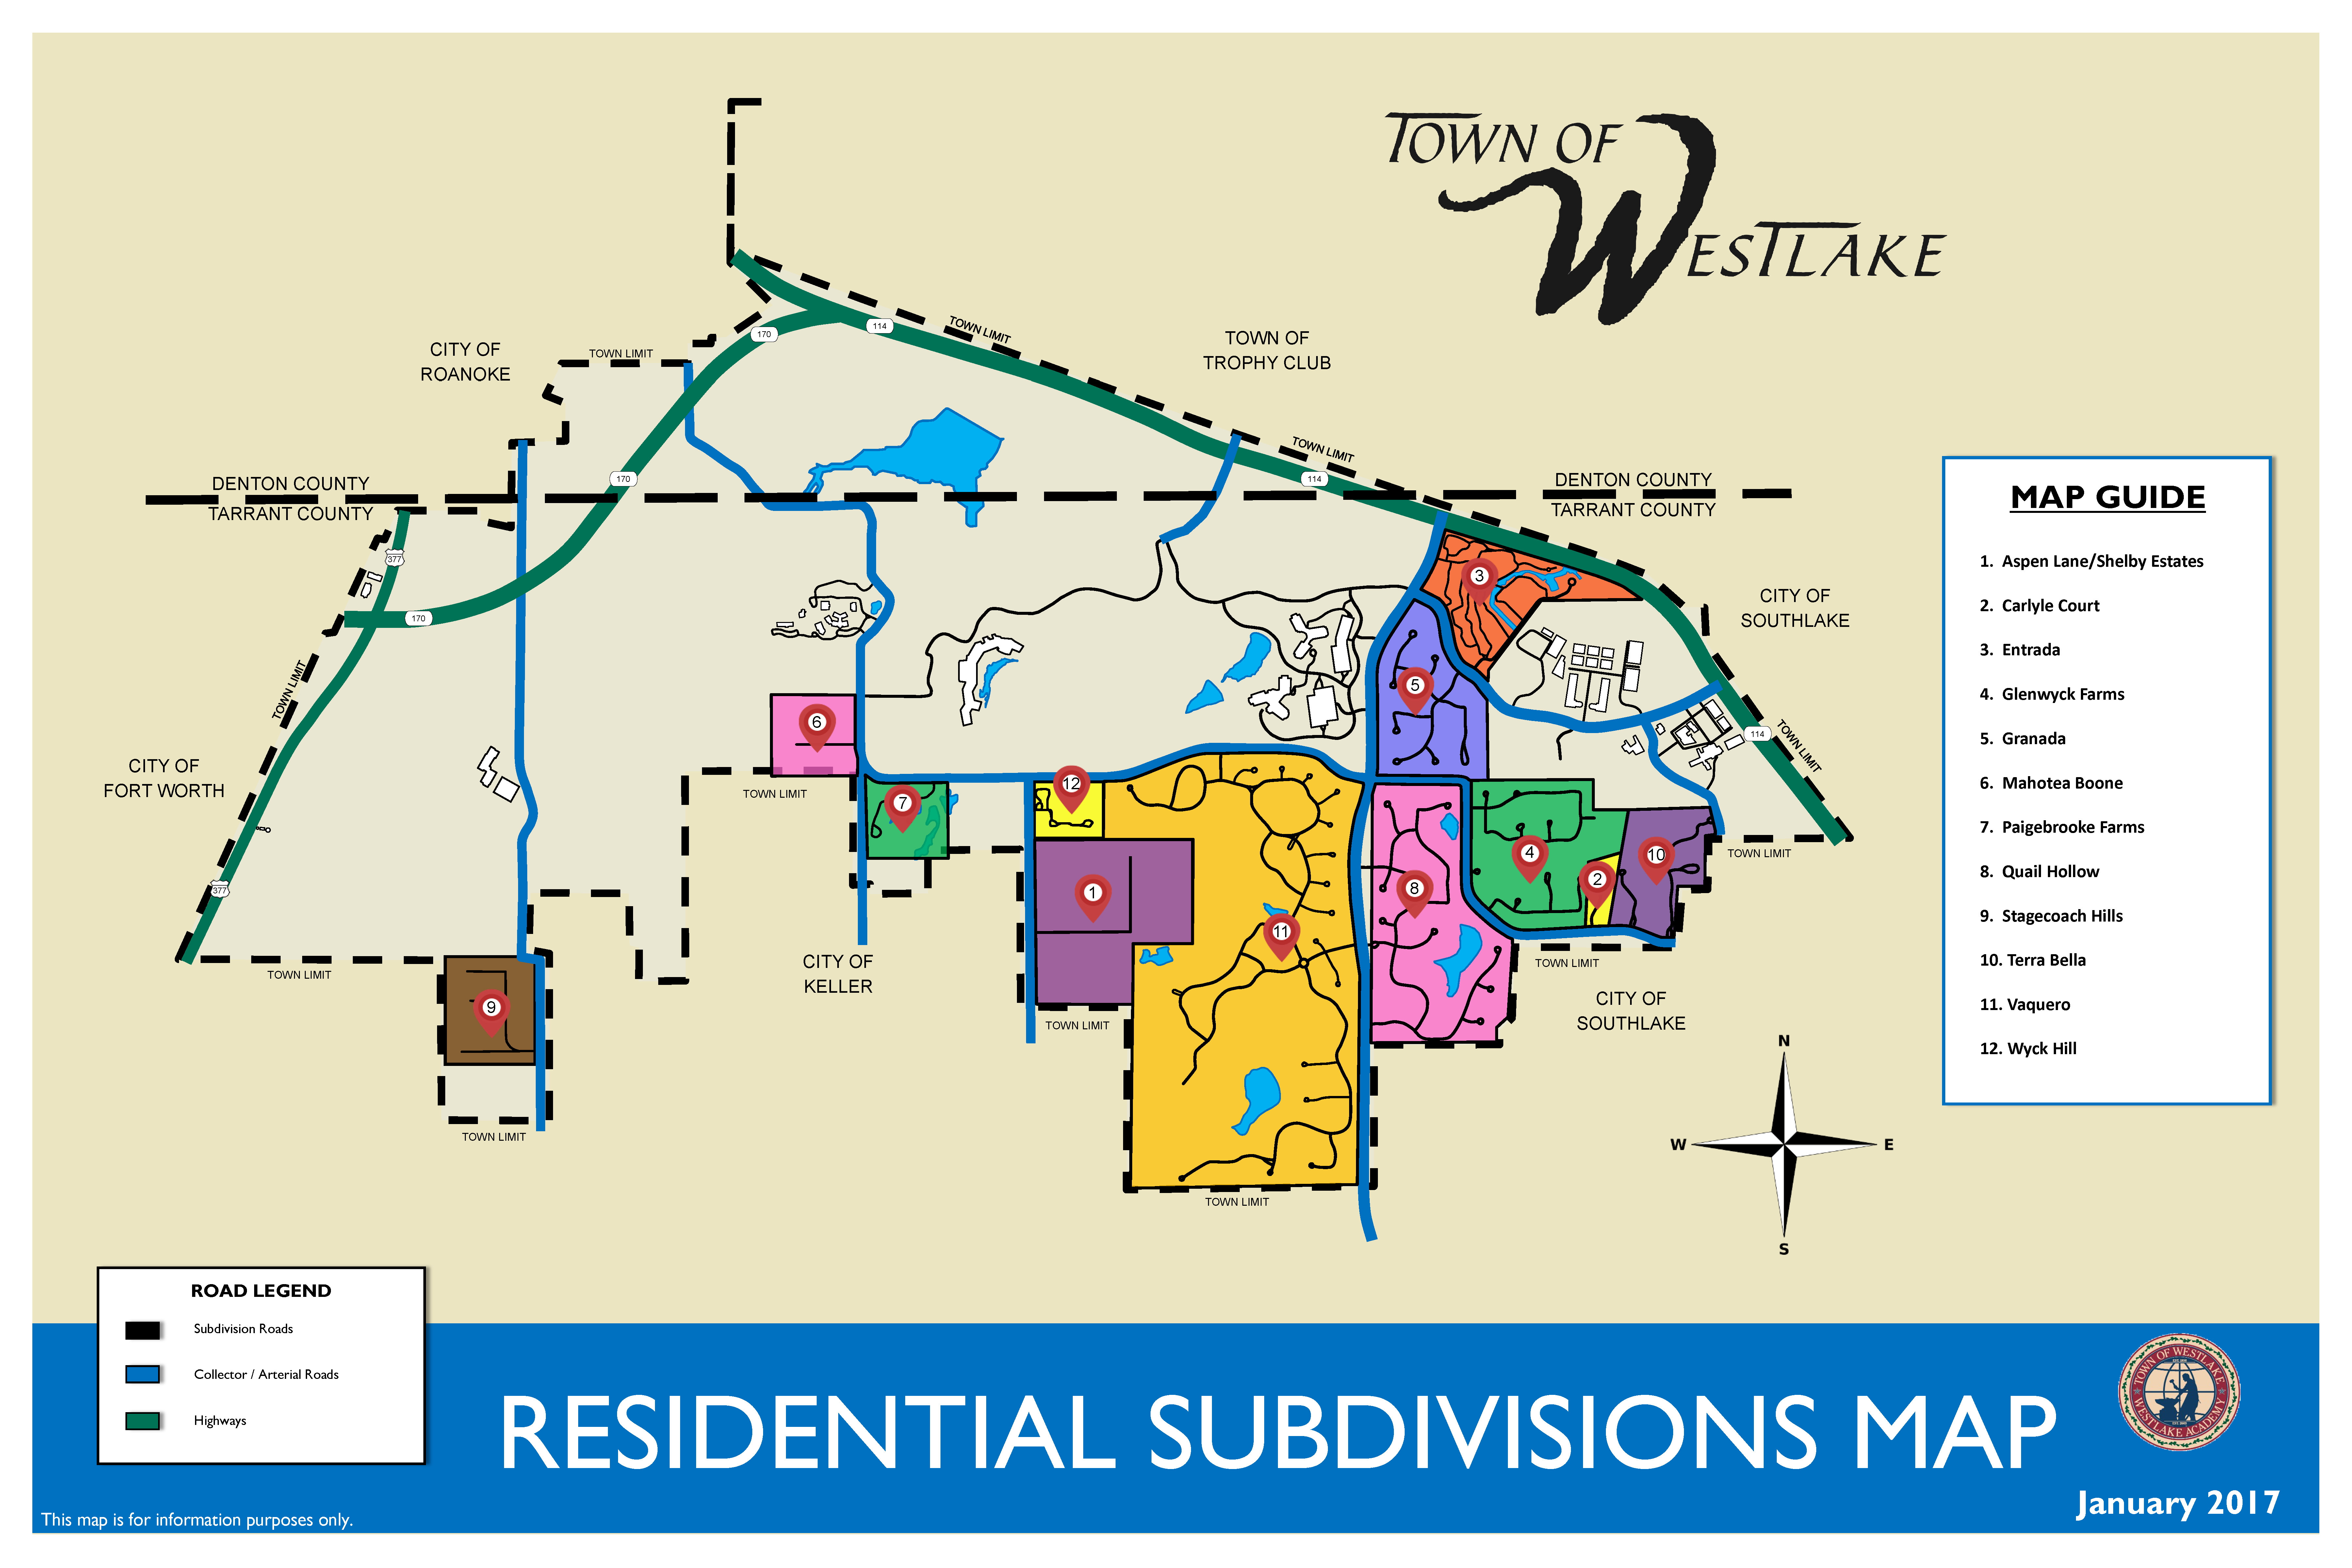 Residential Subdivisions Map.png